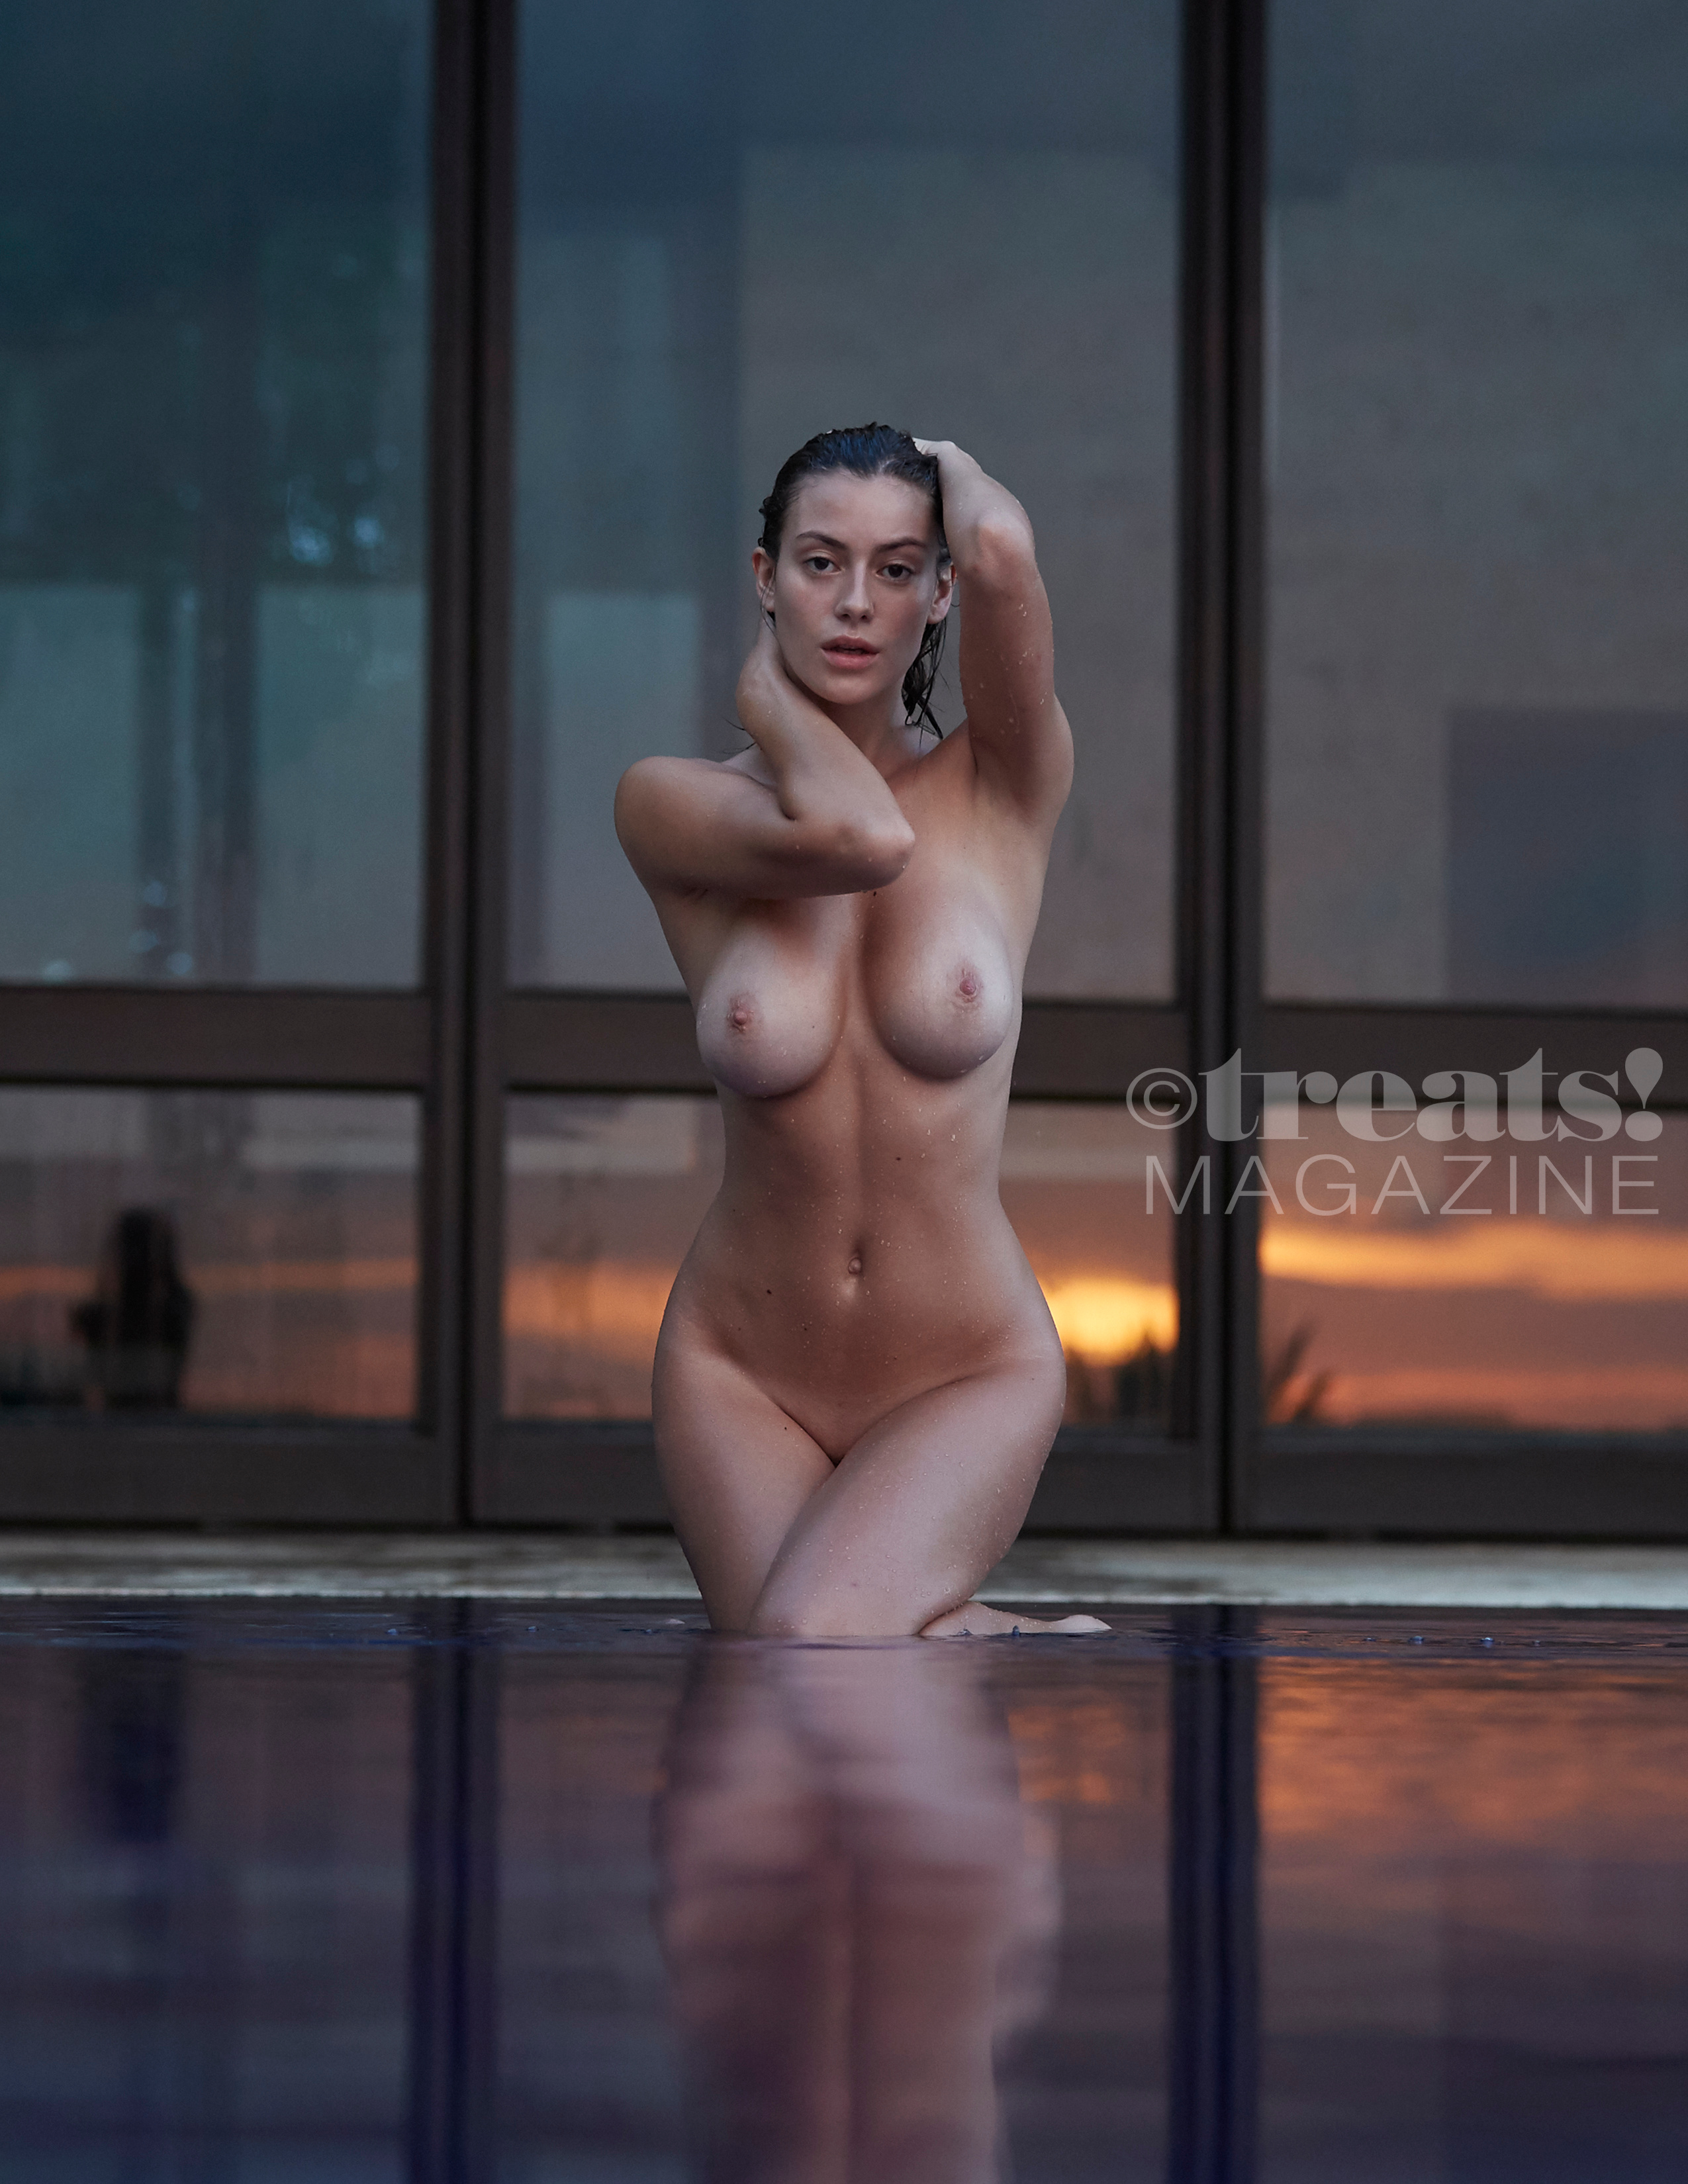 alejandra-guilmant-perfect-nude-body-erotic-treats-magazine-by-david-bellemere-34